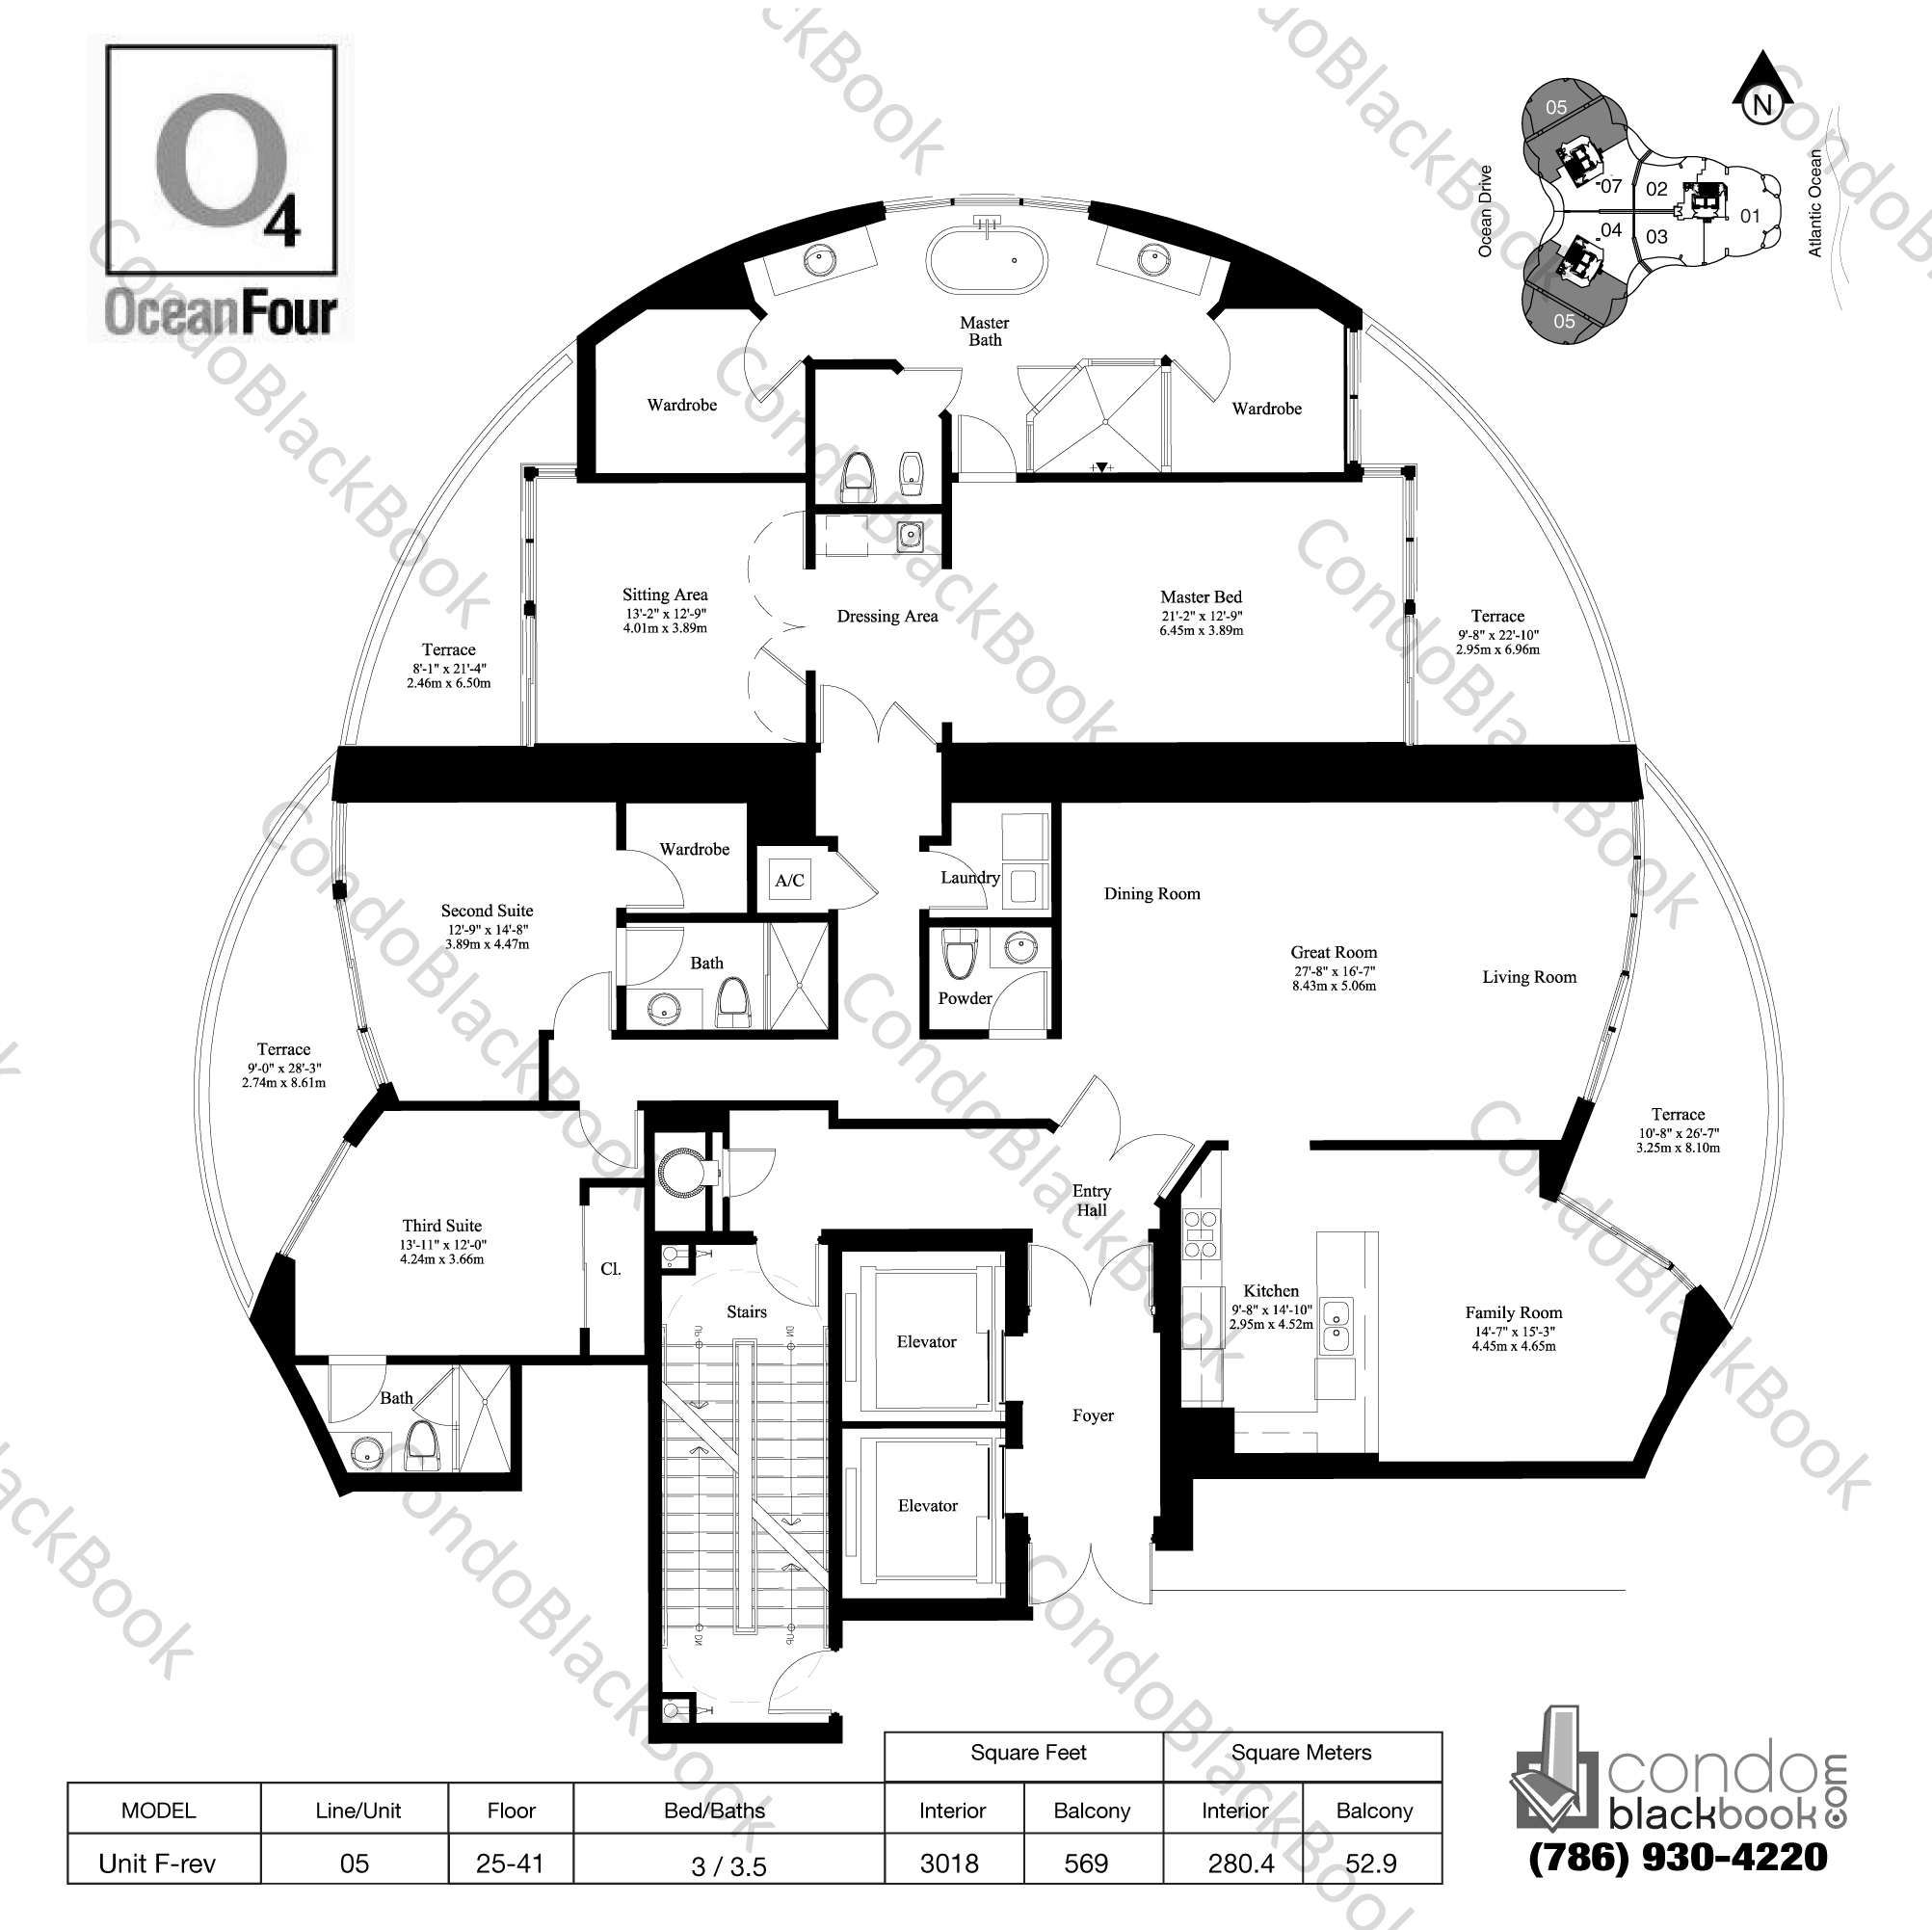 Floor plan for Ocean Four Sunny Isles Beach, model Unit F-rev, line 05, 3 / 3.5 bedrooms, 3018 sq ft